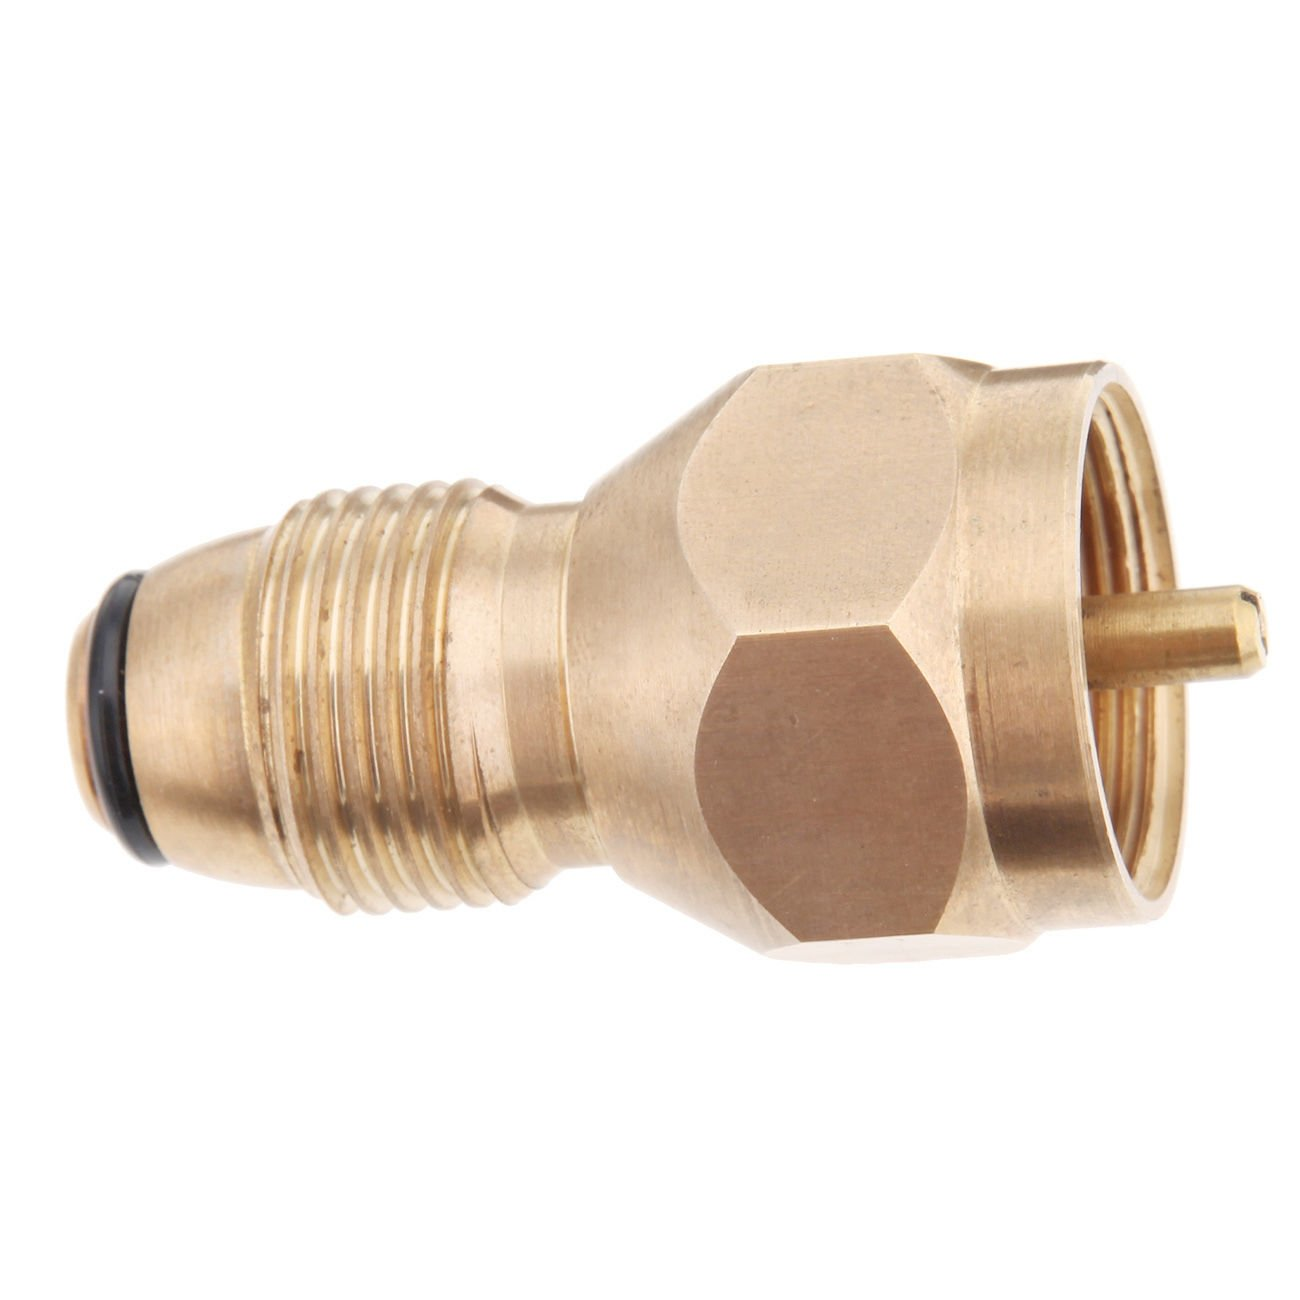 Ridgeyard Brass Cook Steak Saver Gas Grill Valves Adapter, 1 Pound Propane Tank Connector - BBQ Grilling Backup - Replacement for Disposable Bottle Adapter (1 PC)